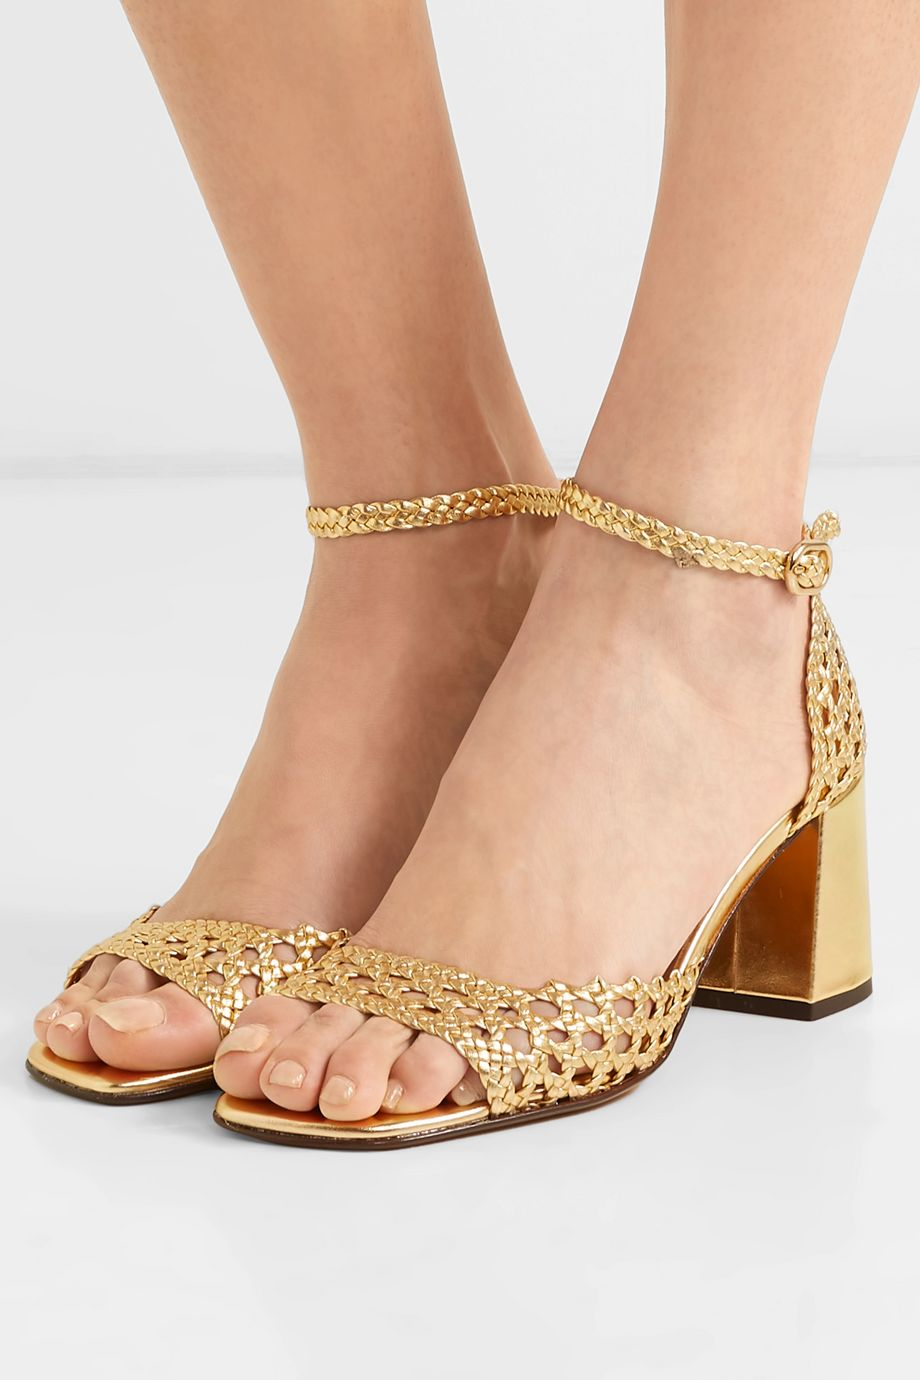 Souliers Martinez Procida woven metallic leather sandals